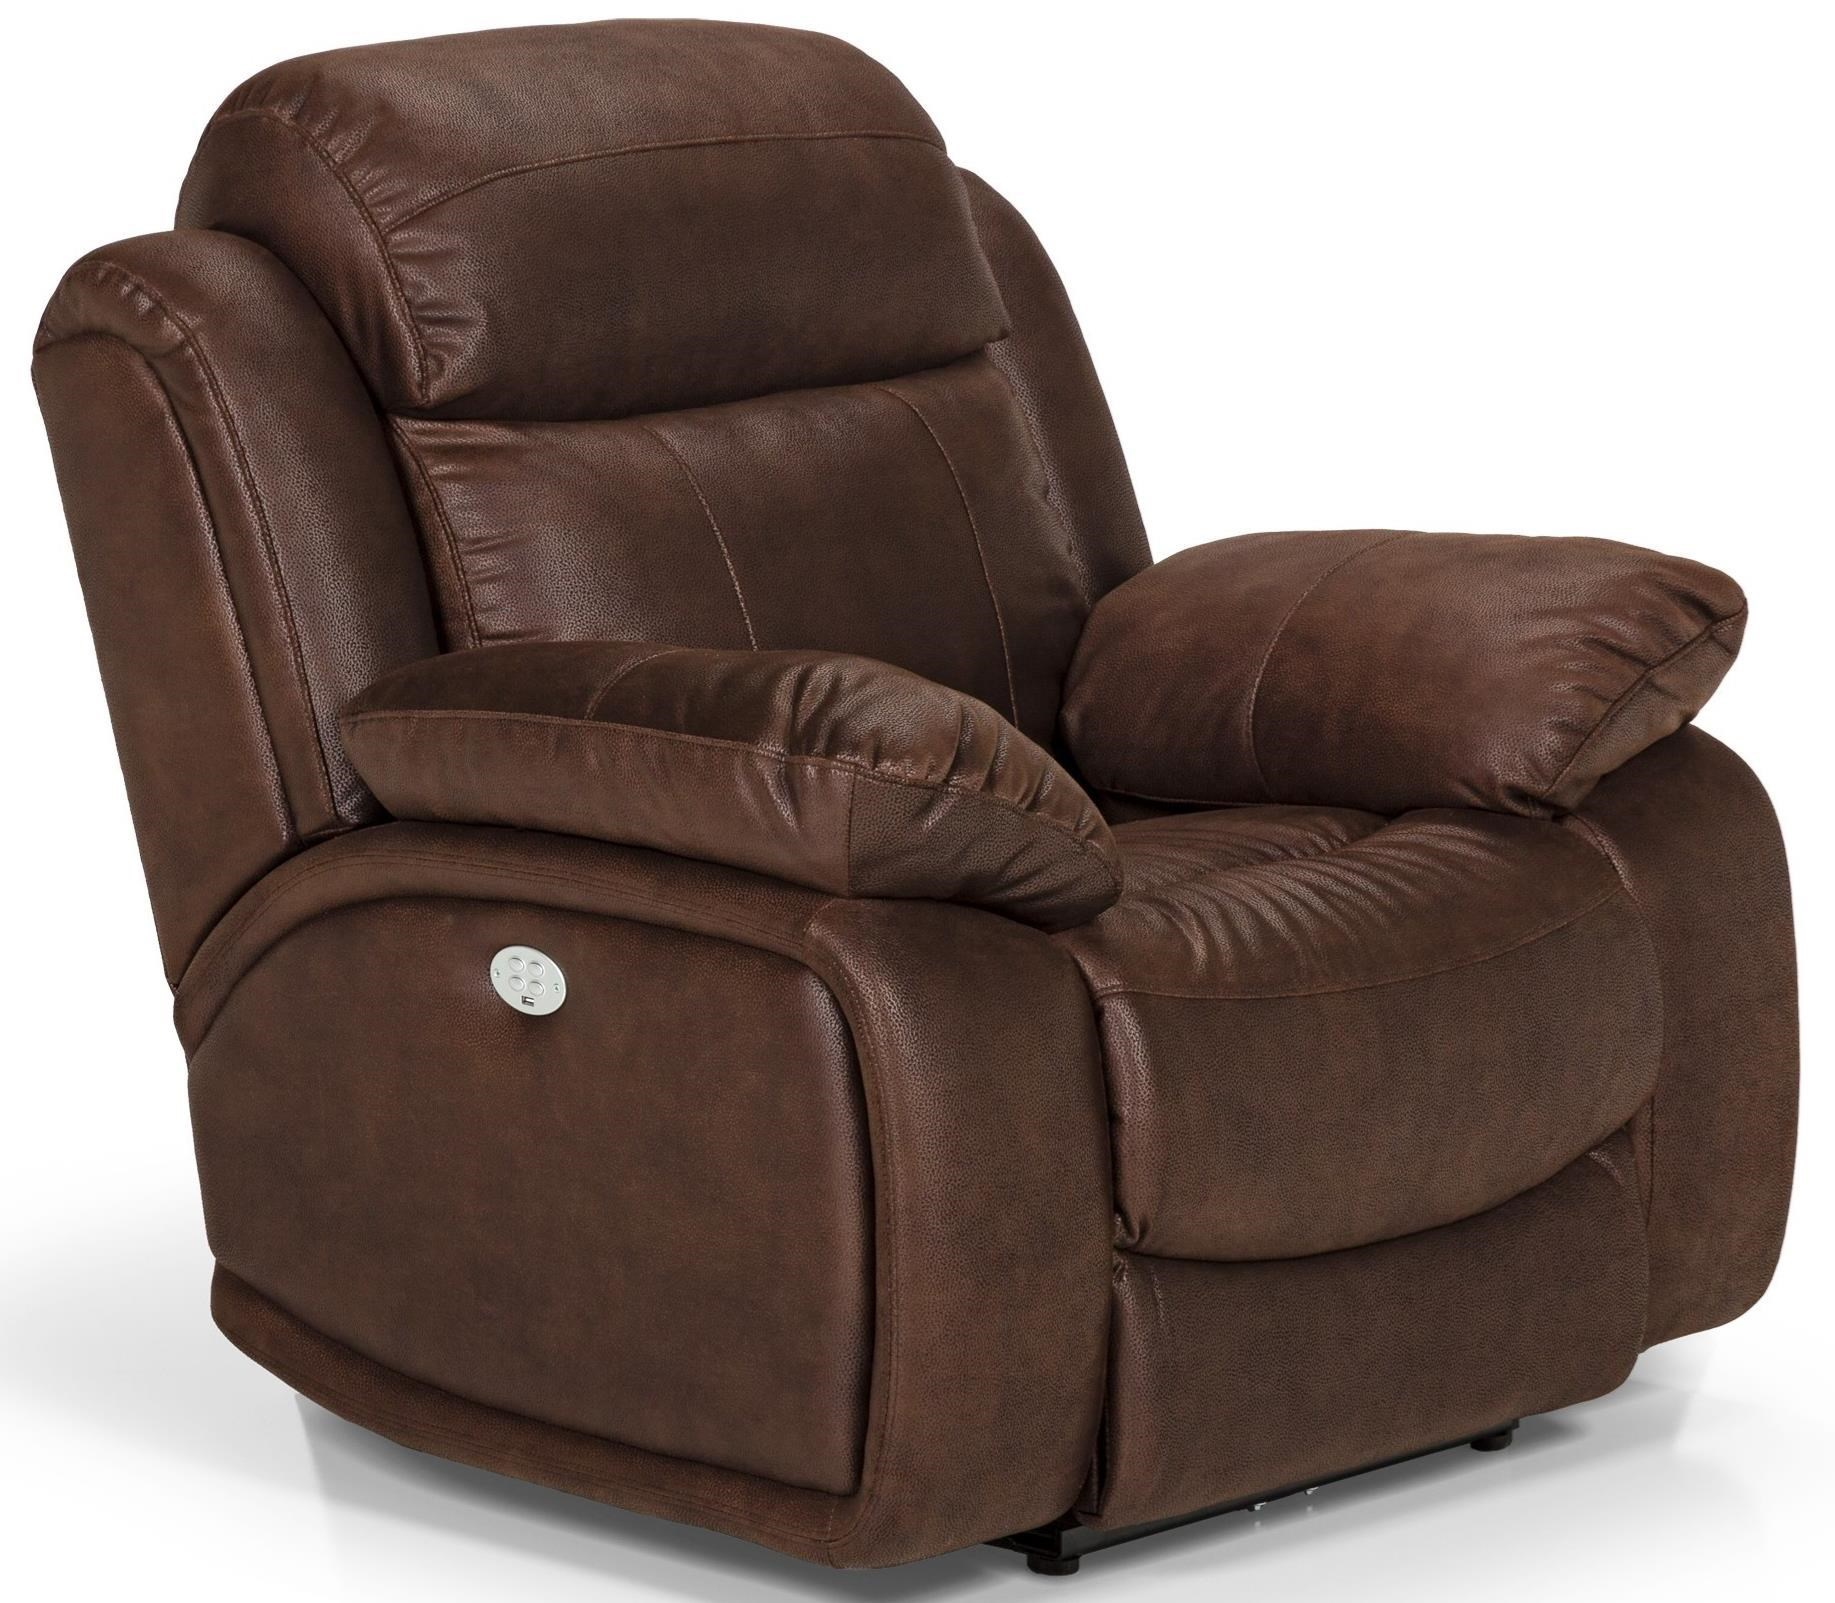 Sunset Home 853 Power Reclining Chair With Power Head/Lumbar And USB Port